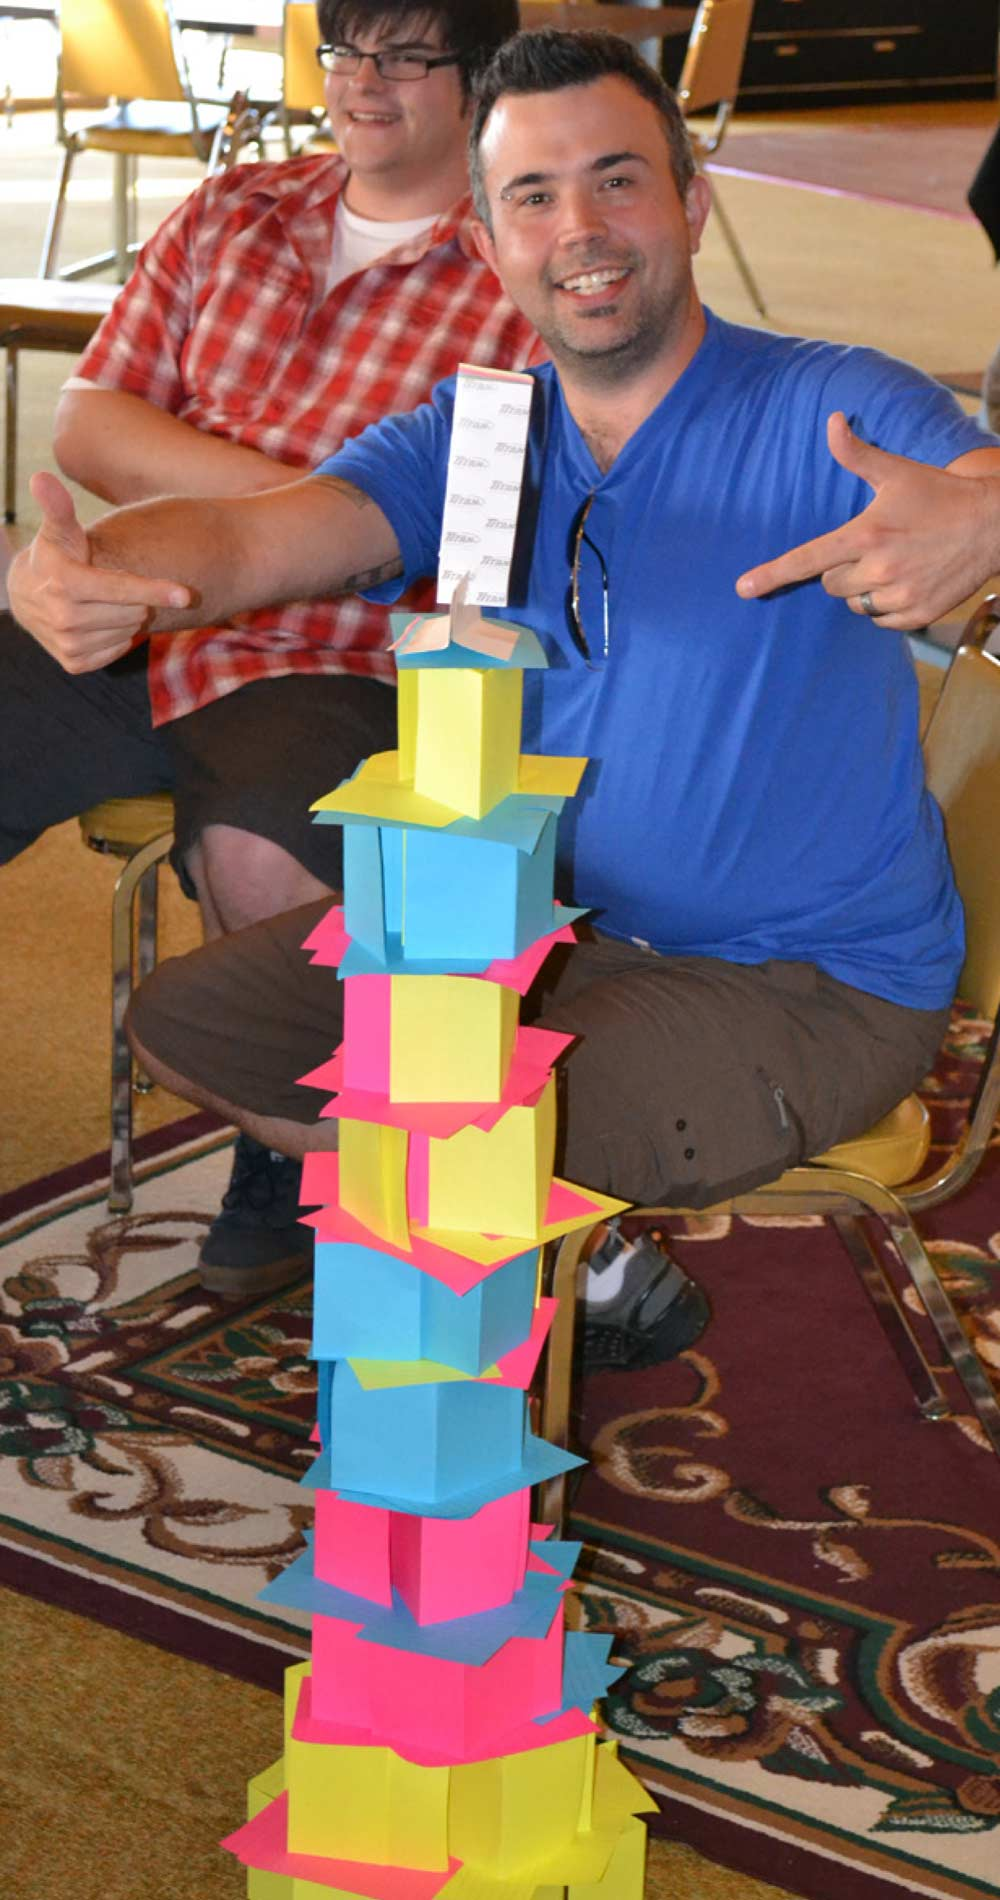 culture-photo-retreat-papertower.jpg